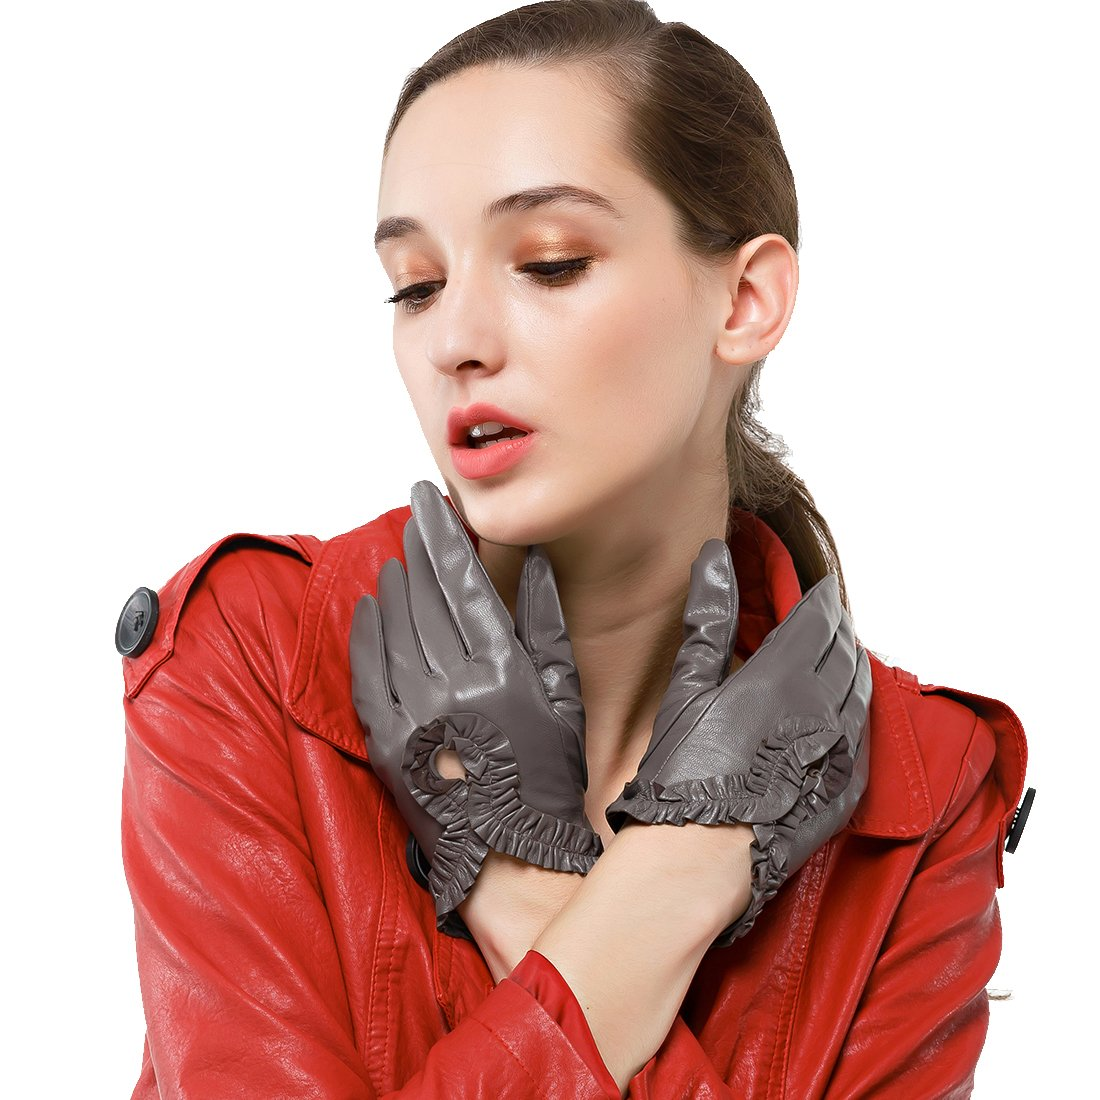 Nappaglo Women's Italian Nappa Leather Gloves Wrist Curved Simple Driving Unlined Gloves (Touchscreen or Non-Touchscreen) (L (Palm Girth:7.5''-8''), Grey (Non-Touchscreen))